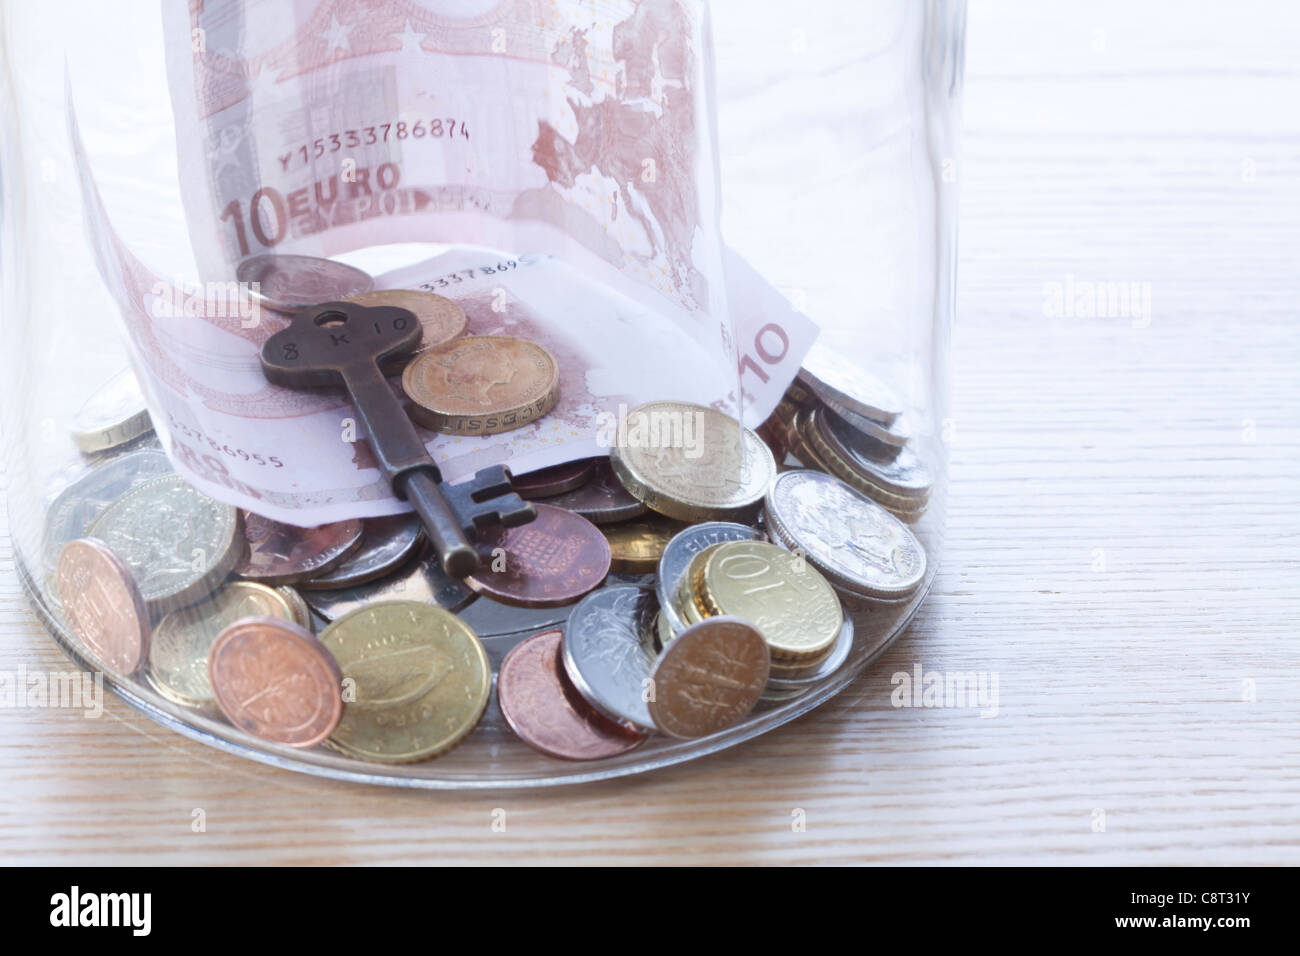 Close-up of European union currency and key in glass jar - Stock Image